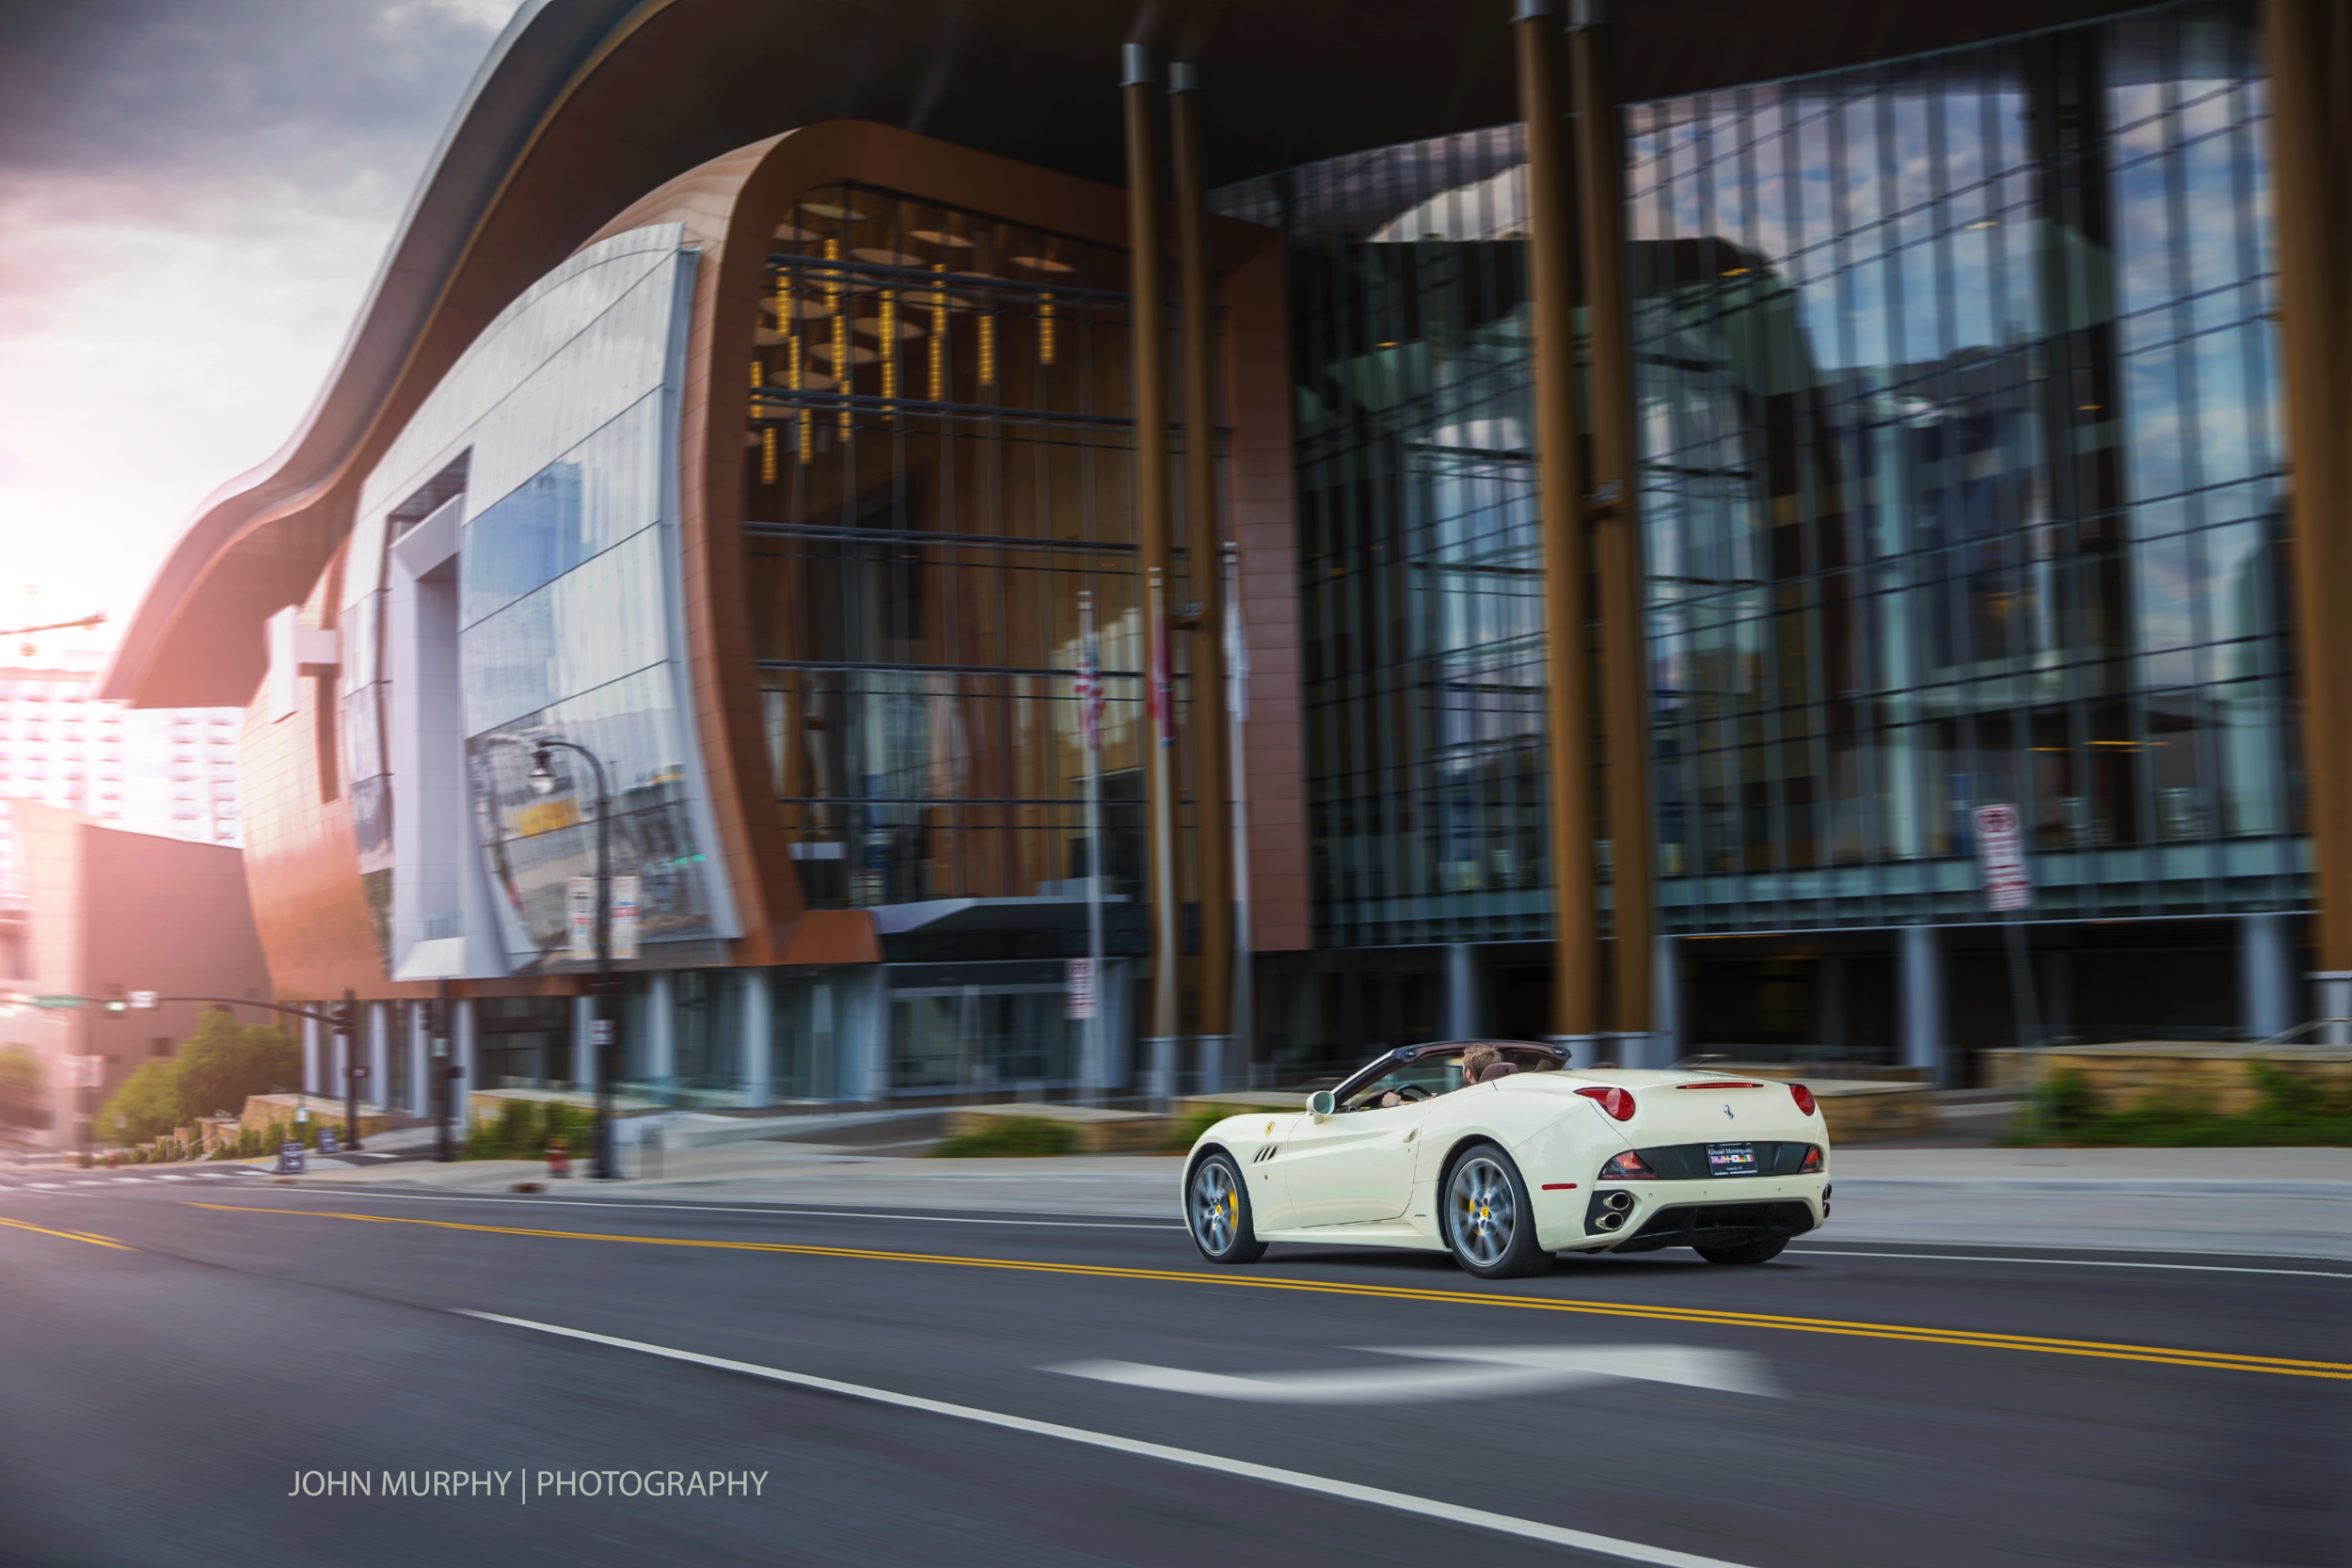 This image is a sequence of images with and without the car edited in VirtualRig Studio Pro 3.